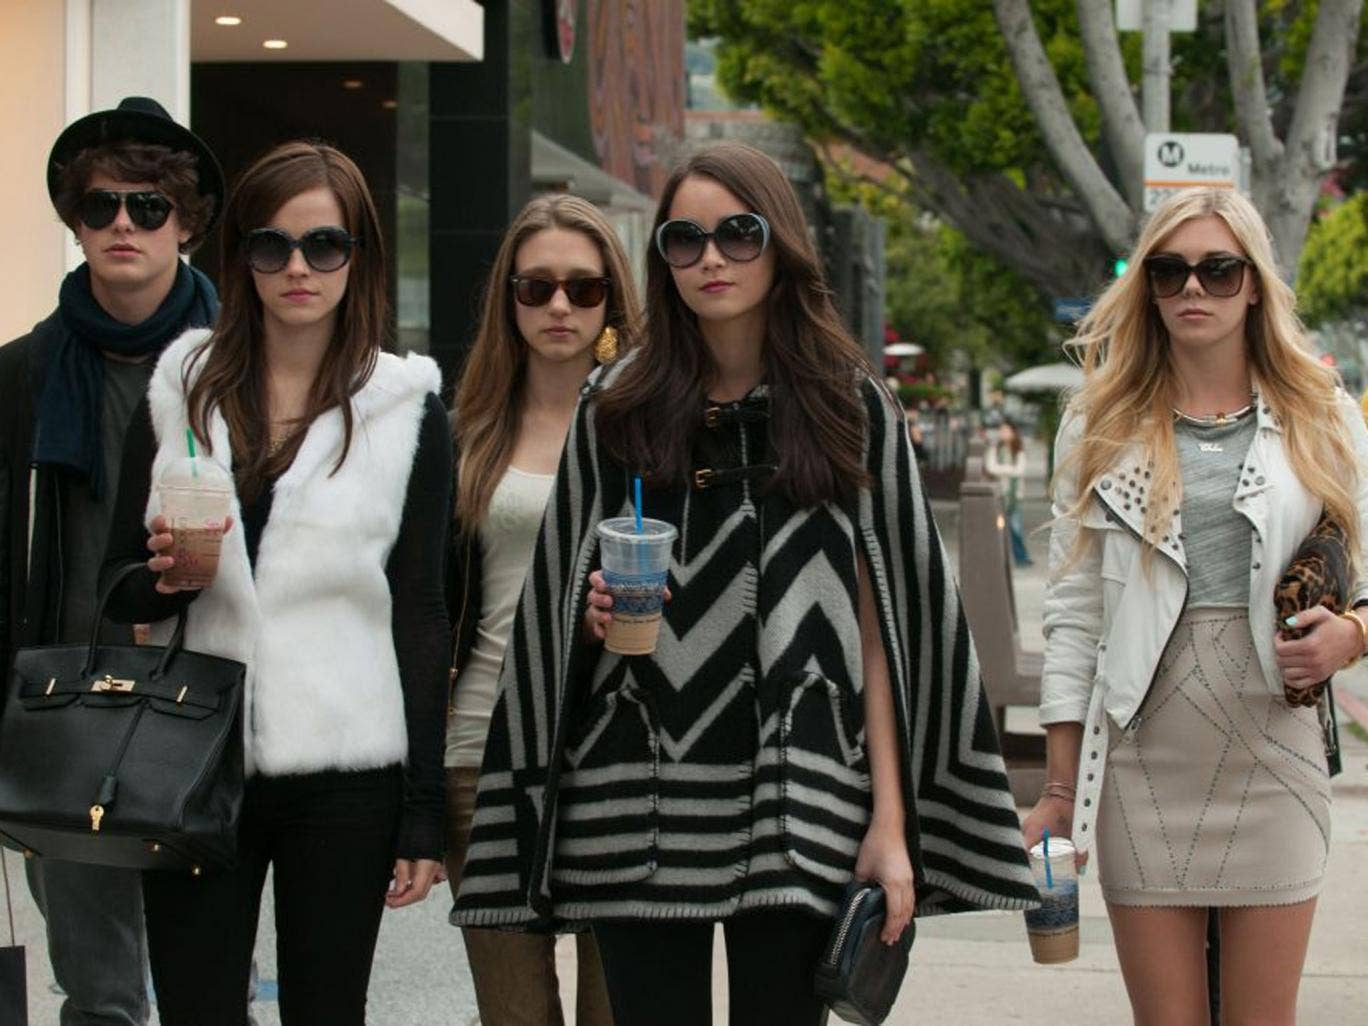 A scene from The Bling Ring, a film based on real-life events which took place in Calabasas